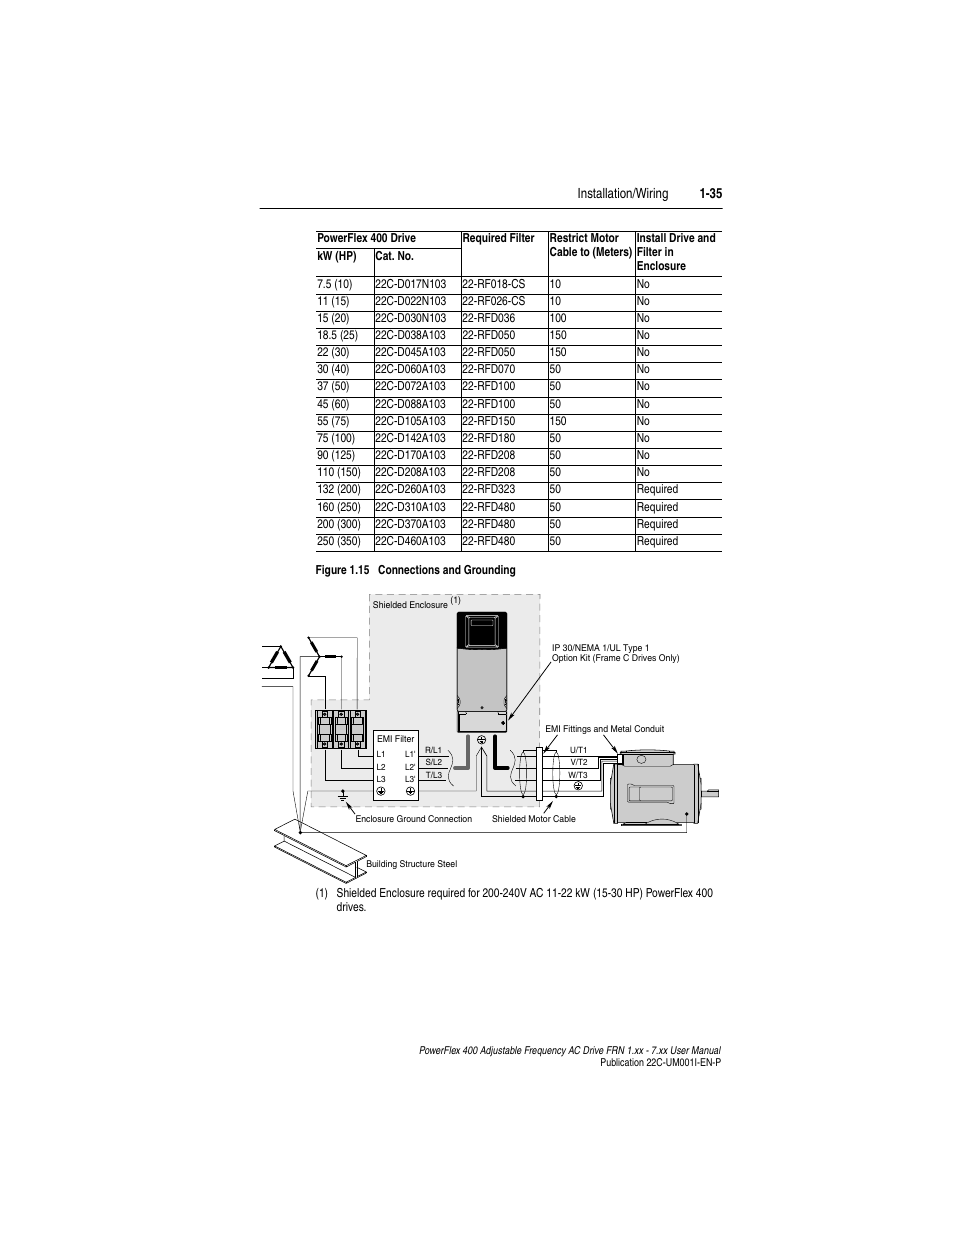 Powerflex 400 Wiring Diagram Trusted Diagrams 70 Rockwell Automation 22c Ac Drive Frn 1 Xx 7 User